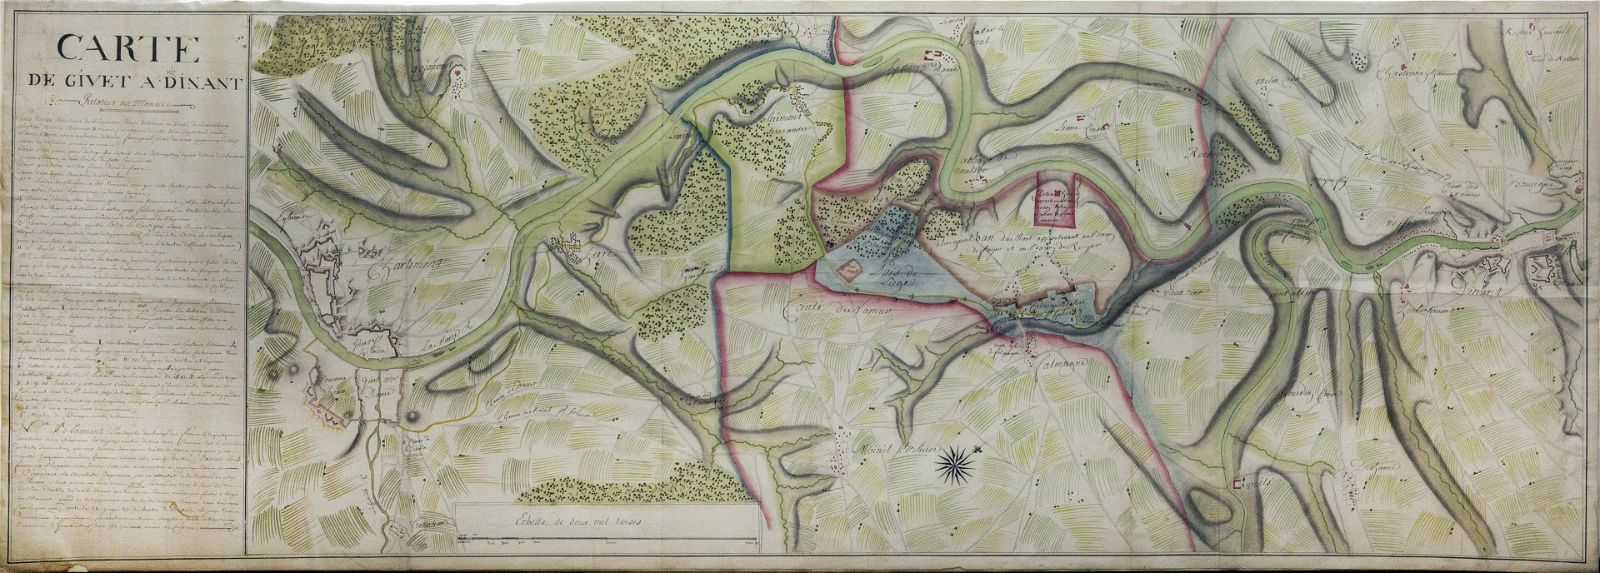 French Manuscript Map of the Meuse Valley